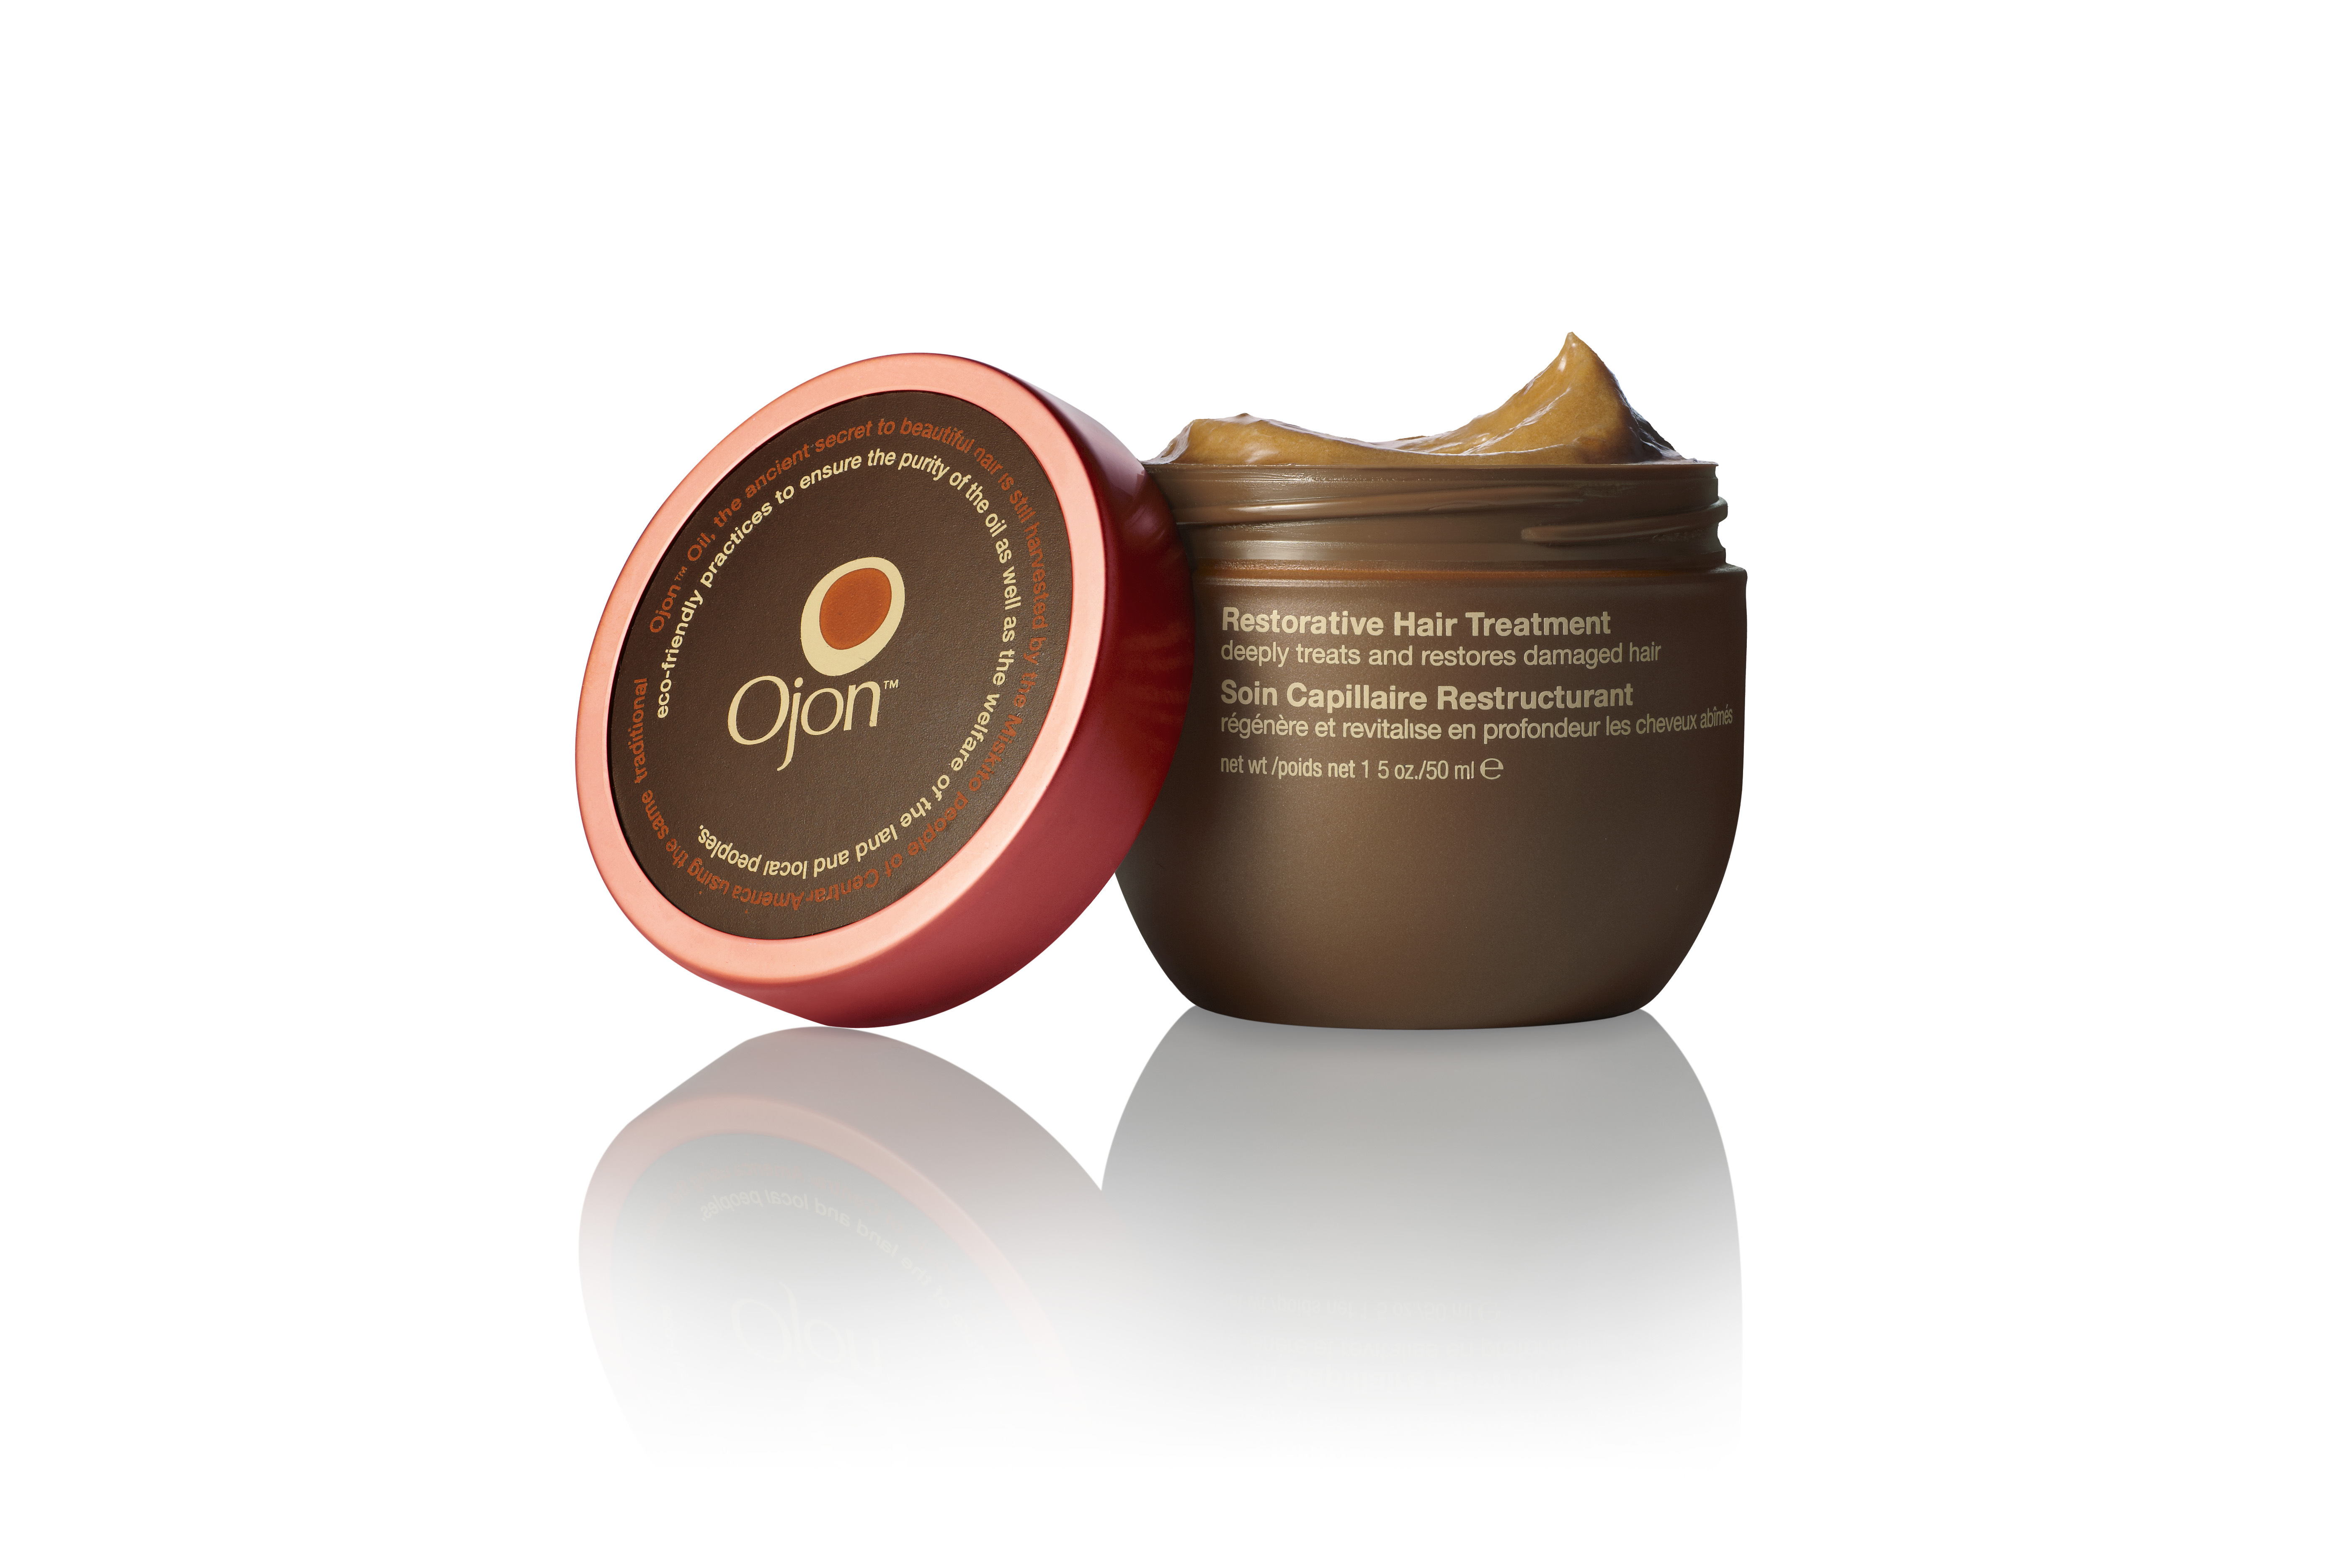 Qvc Masson Beauty And More Tv Ojon Exklusiv Bei Qvc De